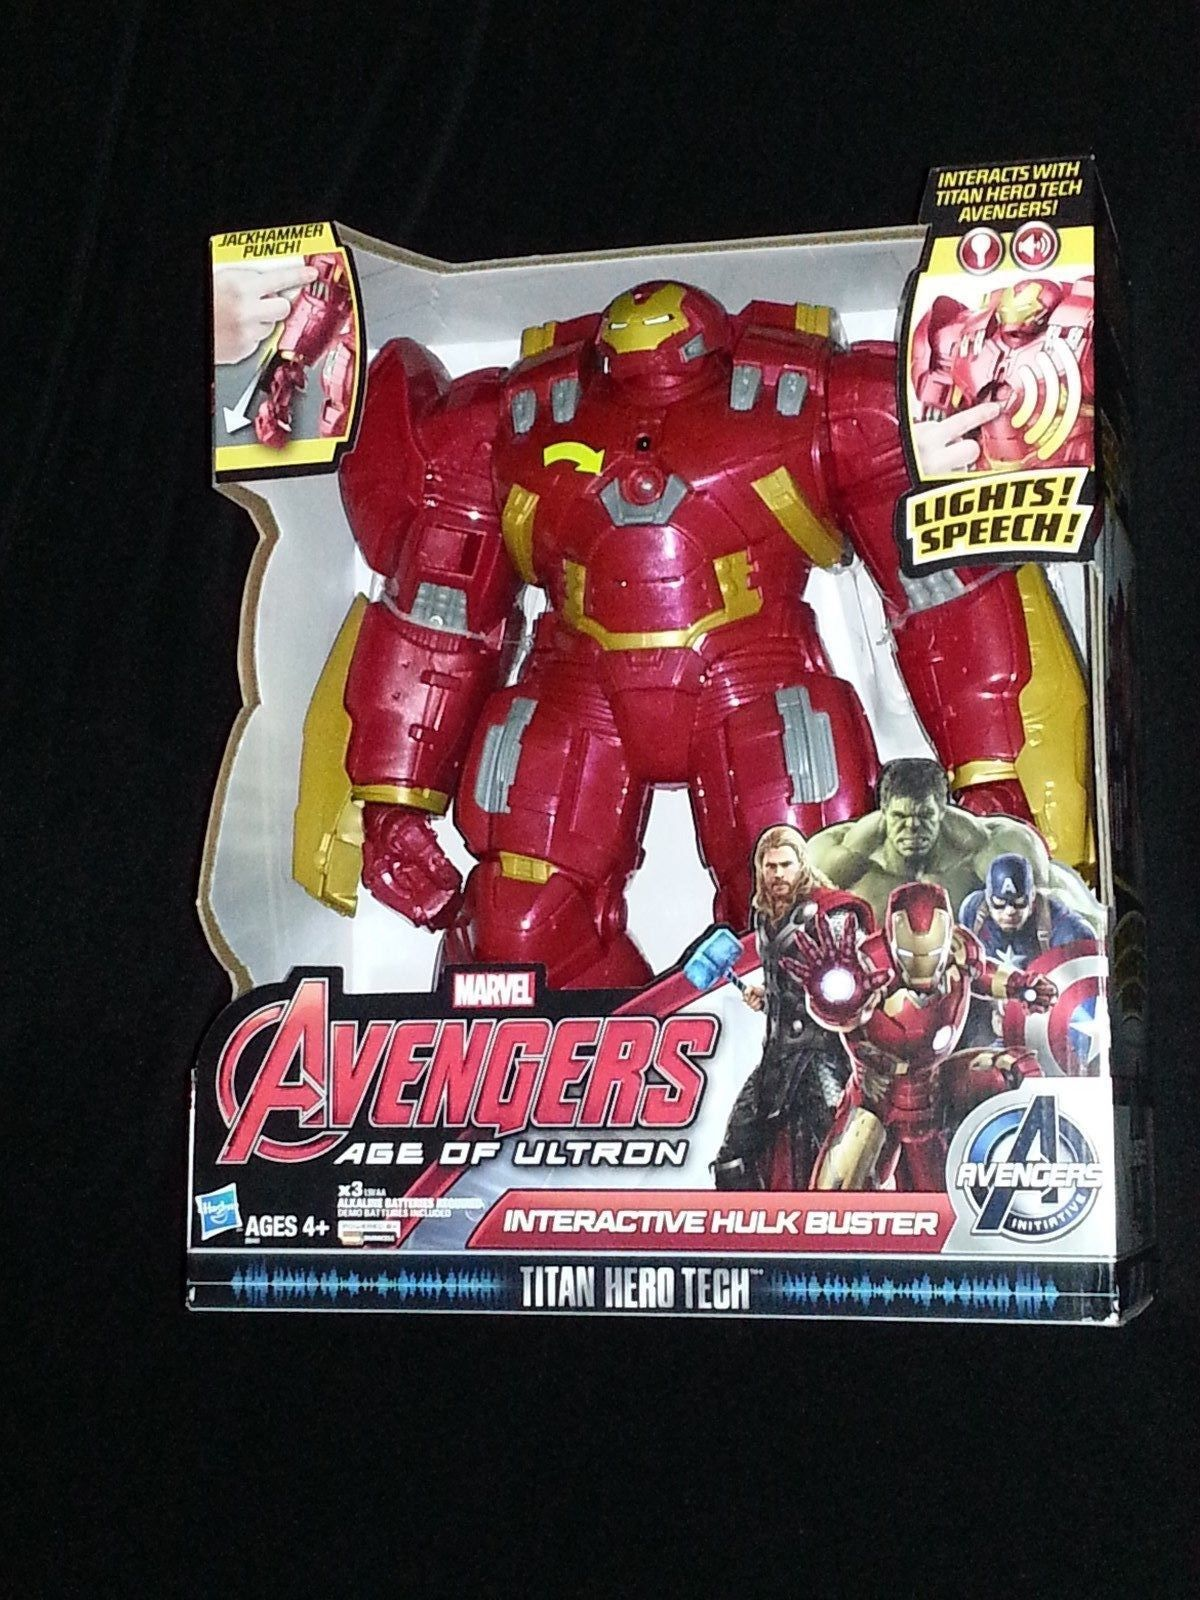 Marvel AVENGERS Age Of Ultron TITAN HERO TECH INTERACTIVE HULK BUSTER He Talks